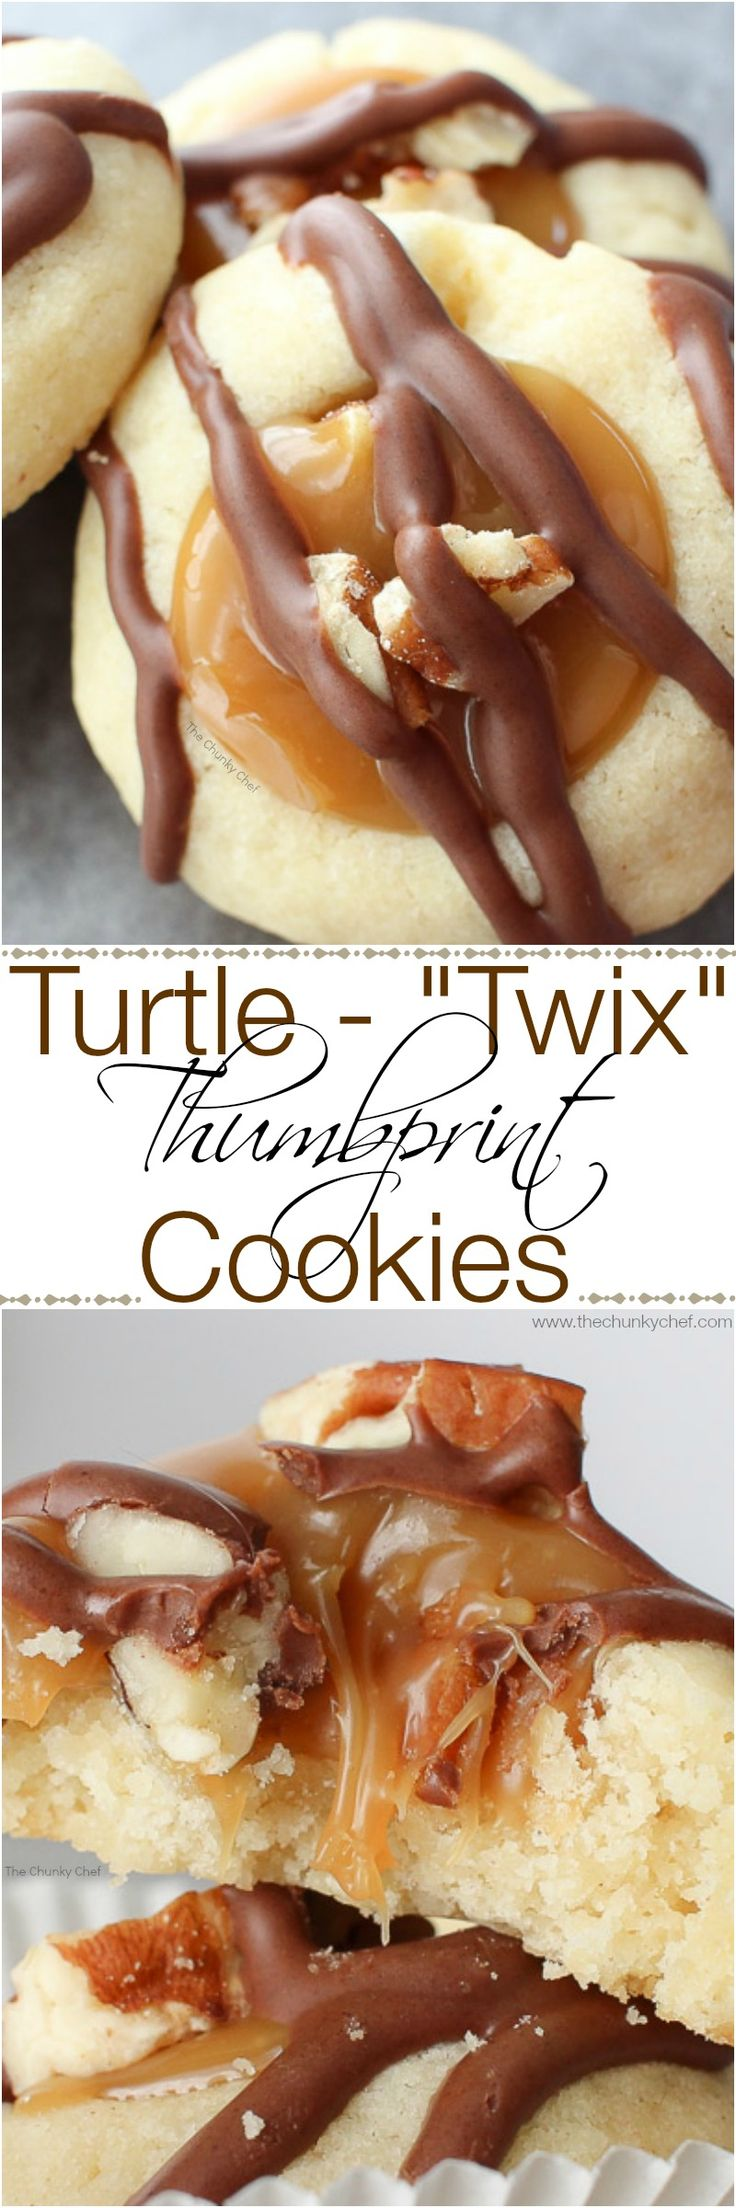 Turtle-Twix Thumbprint Cookies ~ Thumbprint cookies are such a classic... this spin on them includes a gooey caramel center and drizzled melted chocolate... Tastes just like a Twix!